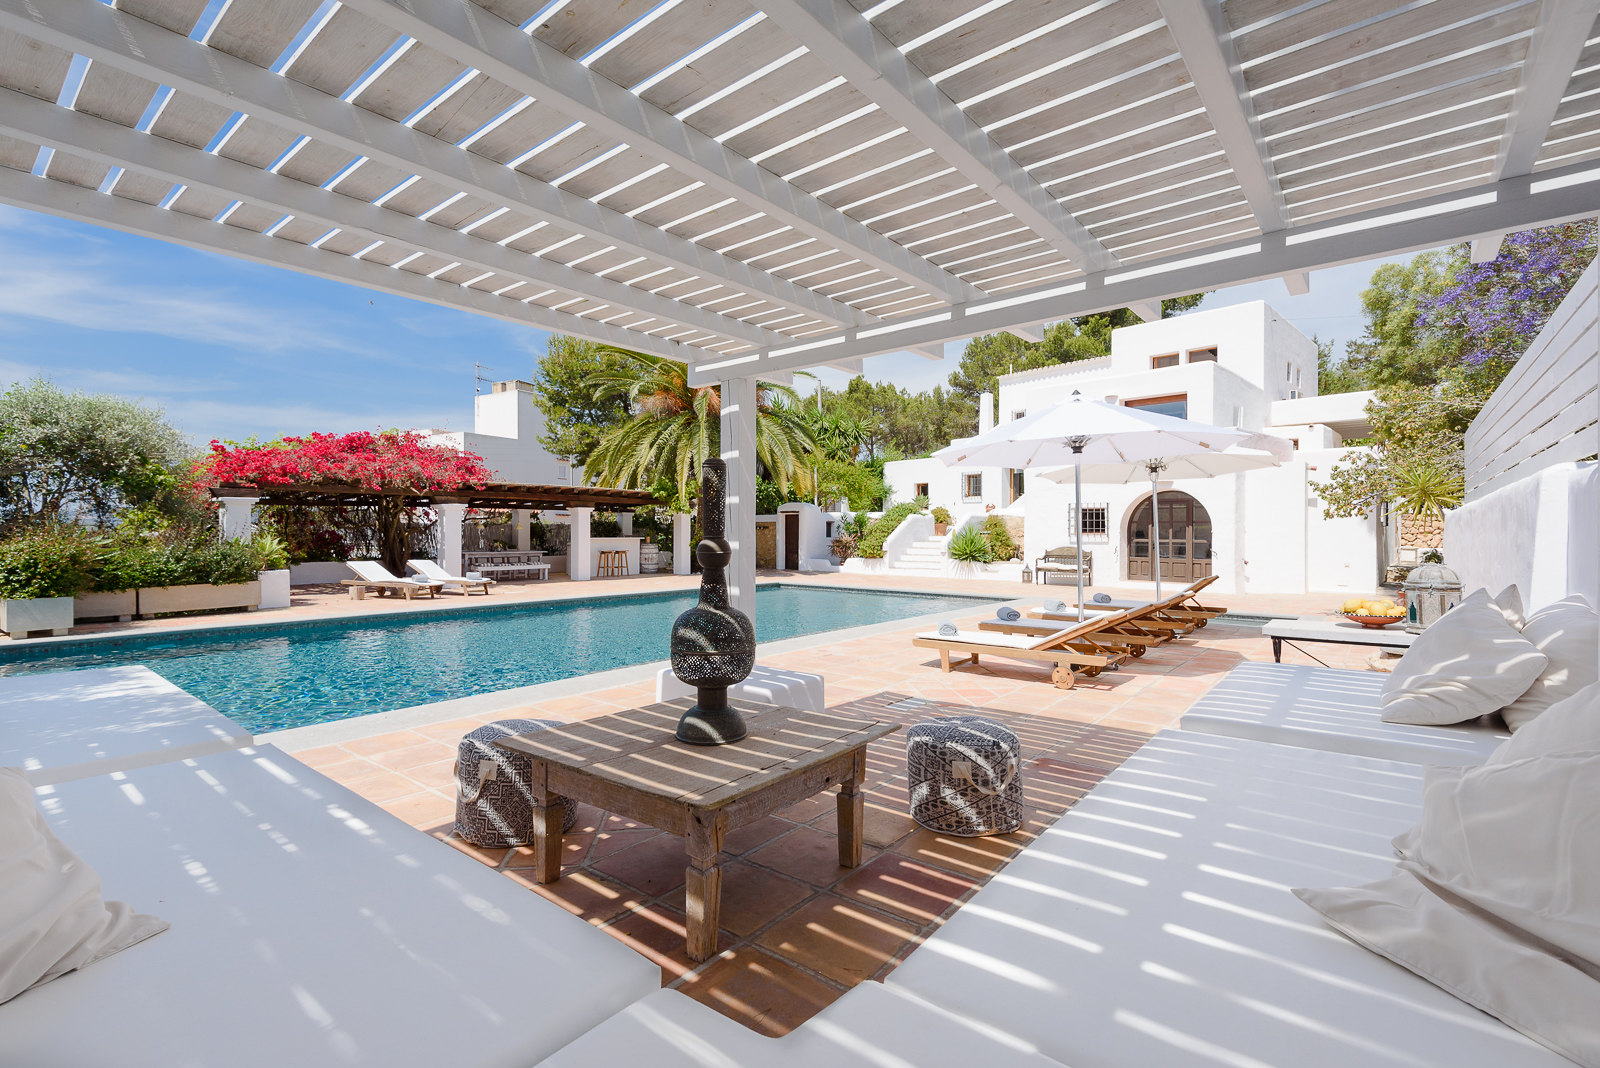 https://www.white-ibiza.com/wp-content/uploads/2020/05/white-ibiza-villas-can-lyra-outside-chill-out.jpg